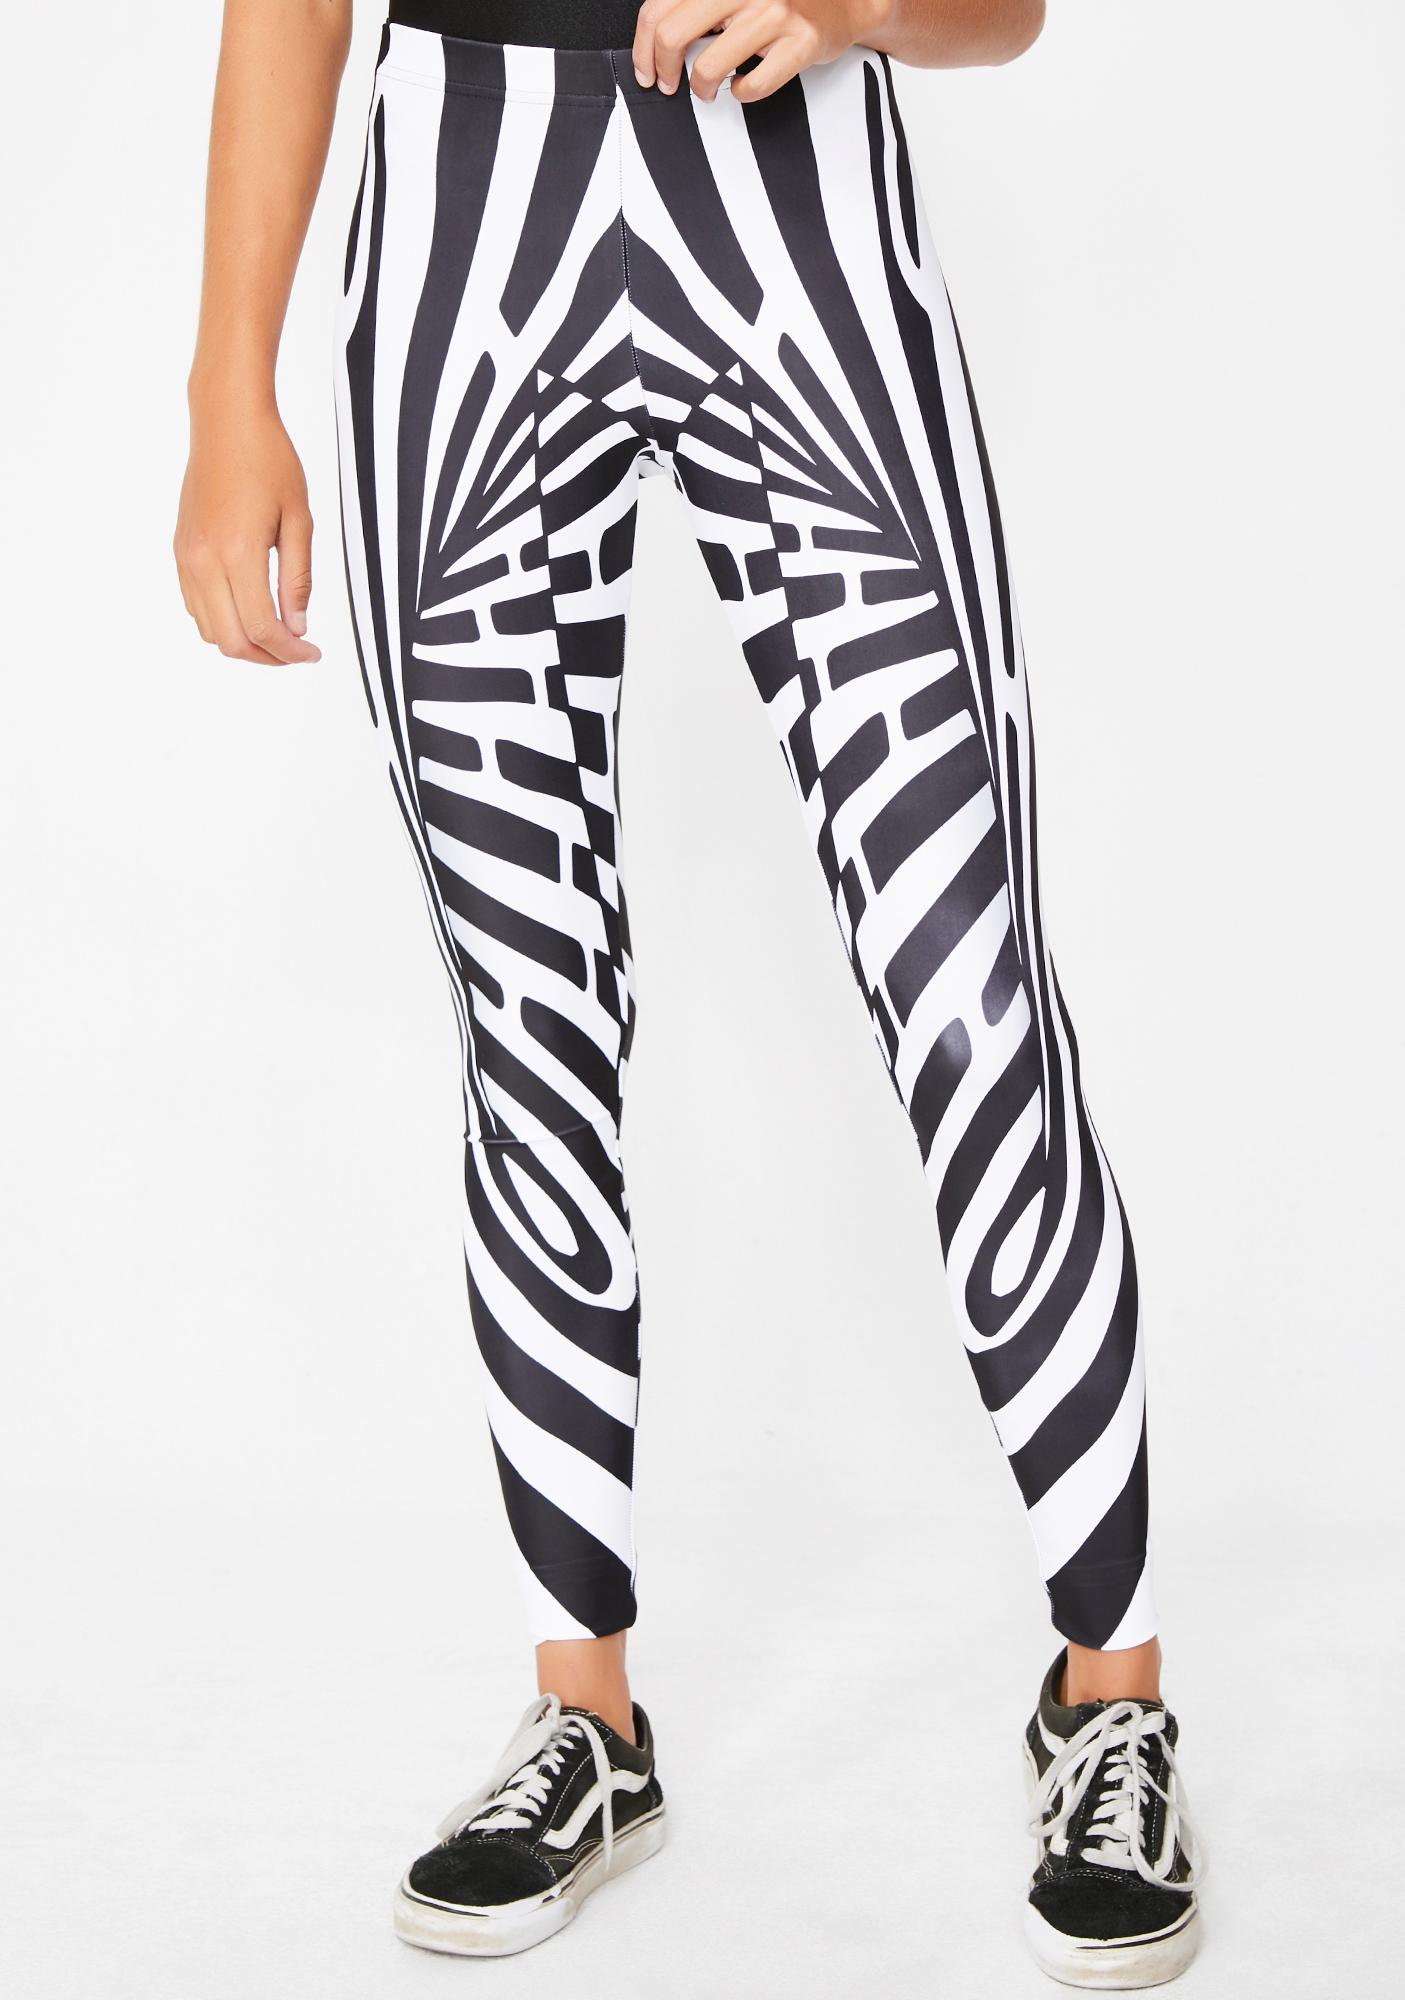 Badinka Illusion Leggings